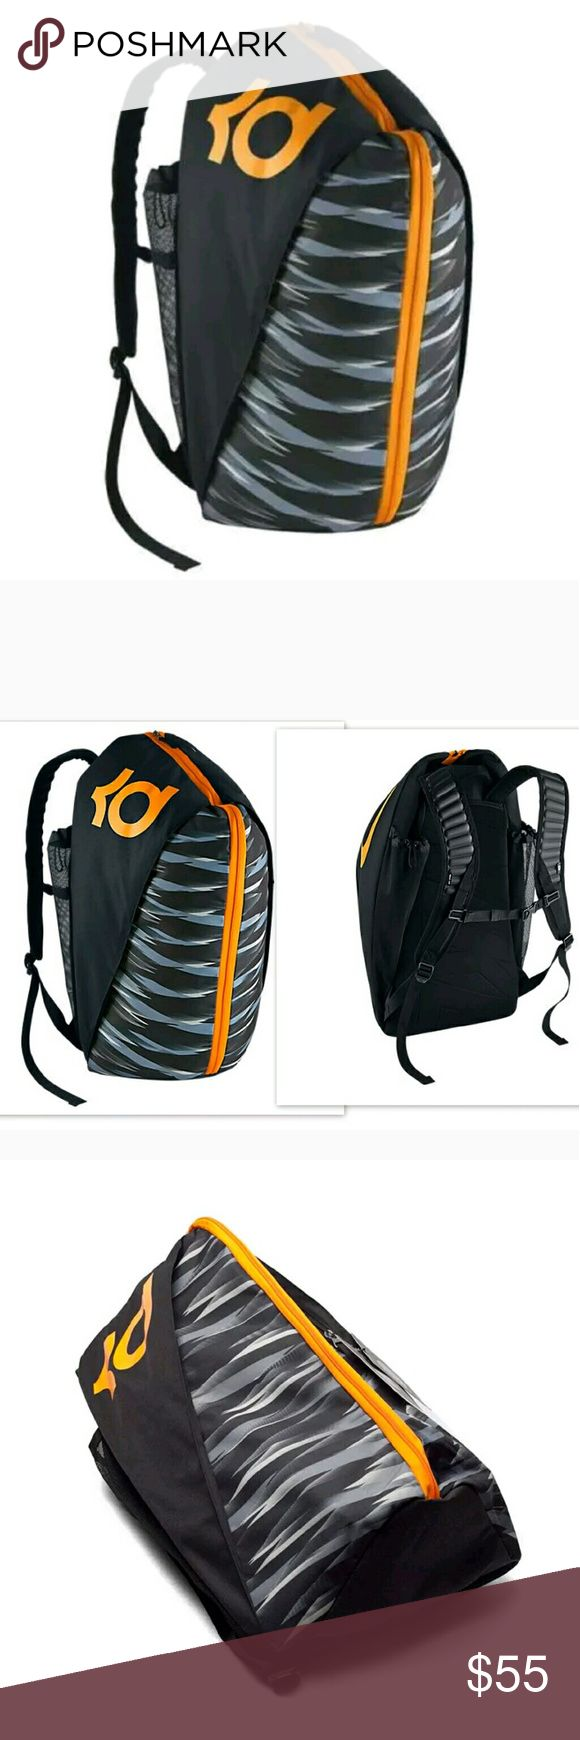 Brand new Nike Kd backpack Brand new with tags   EASY ACCESS! The KD Max Air VIII Basketball Backpack opens like a duffel bag. It's a cinch to access all your gear, thanks to separate compartments for your shoes and water bottle.   Opens like a duffel bag for easy access  Shoe compartment holds up to a size 15  Flyweave fabric is engineered for lightweight strength and durability  Adjustable padded shoulder straps keep you comfortable  Fuel pocket stores your water bottle  Product…